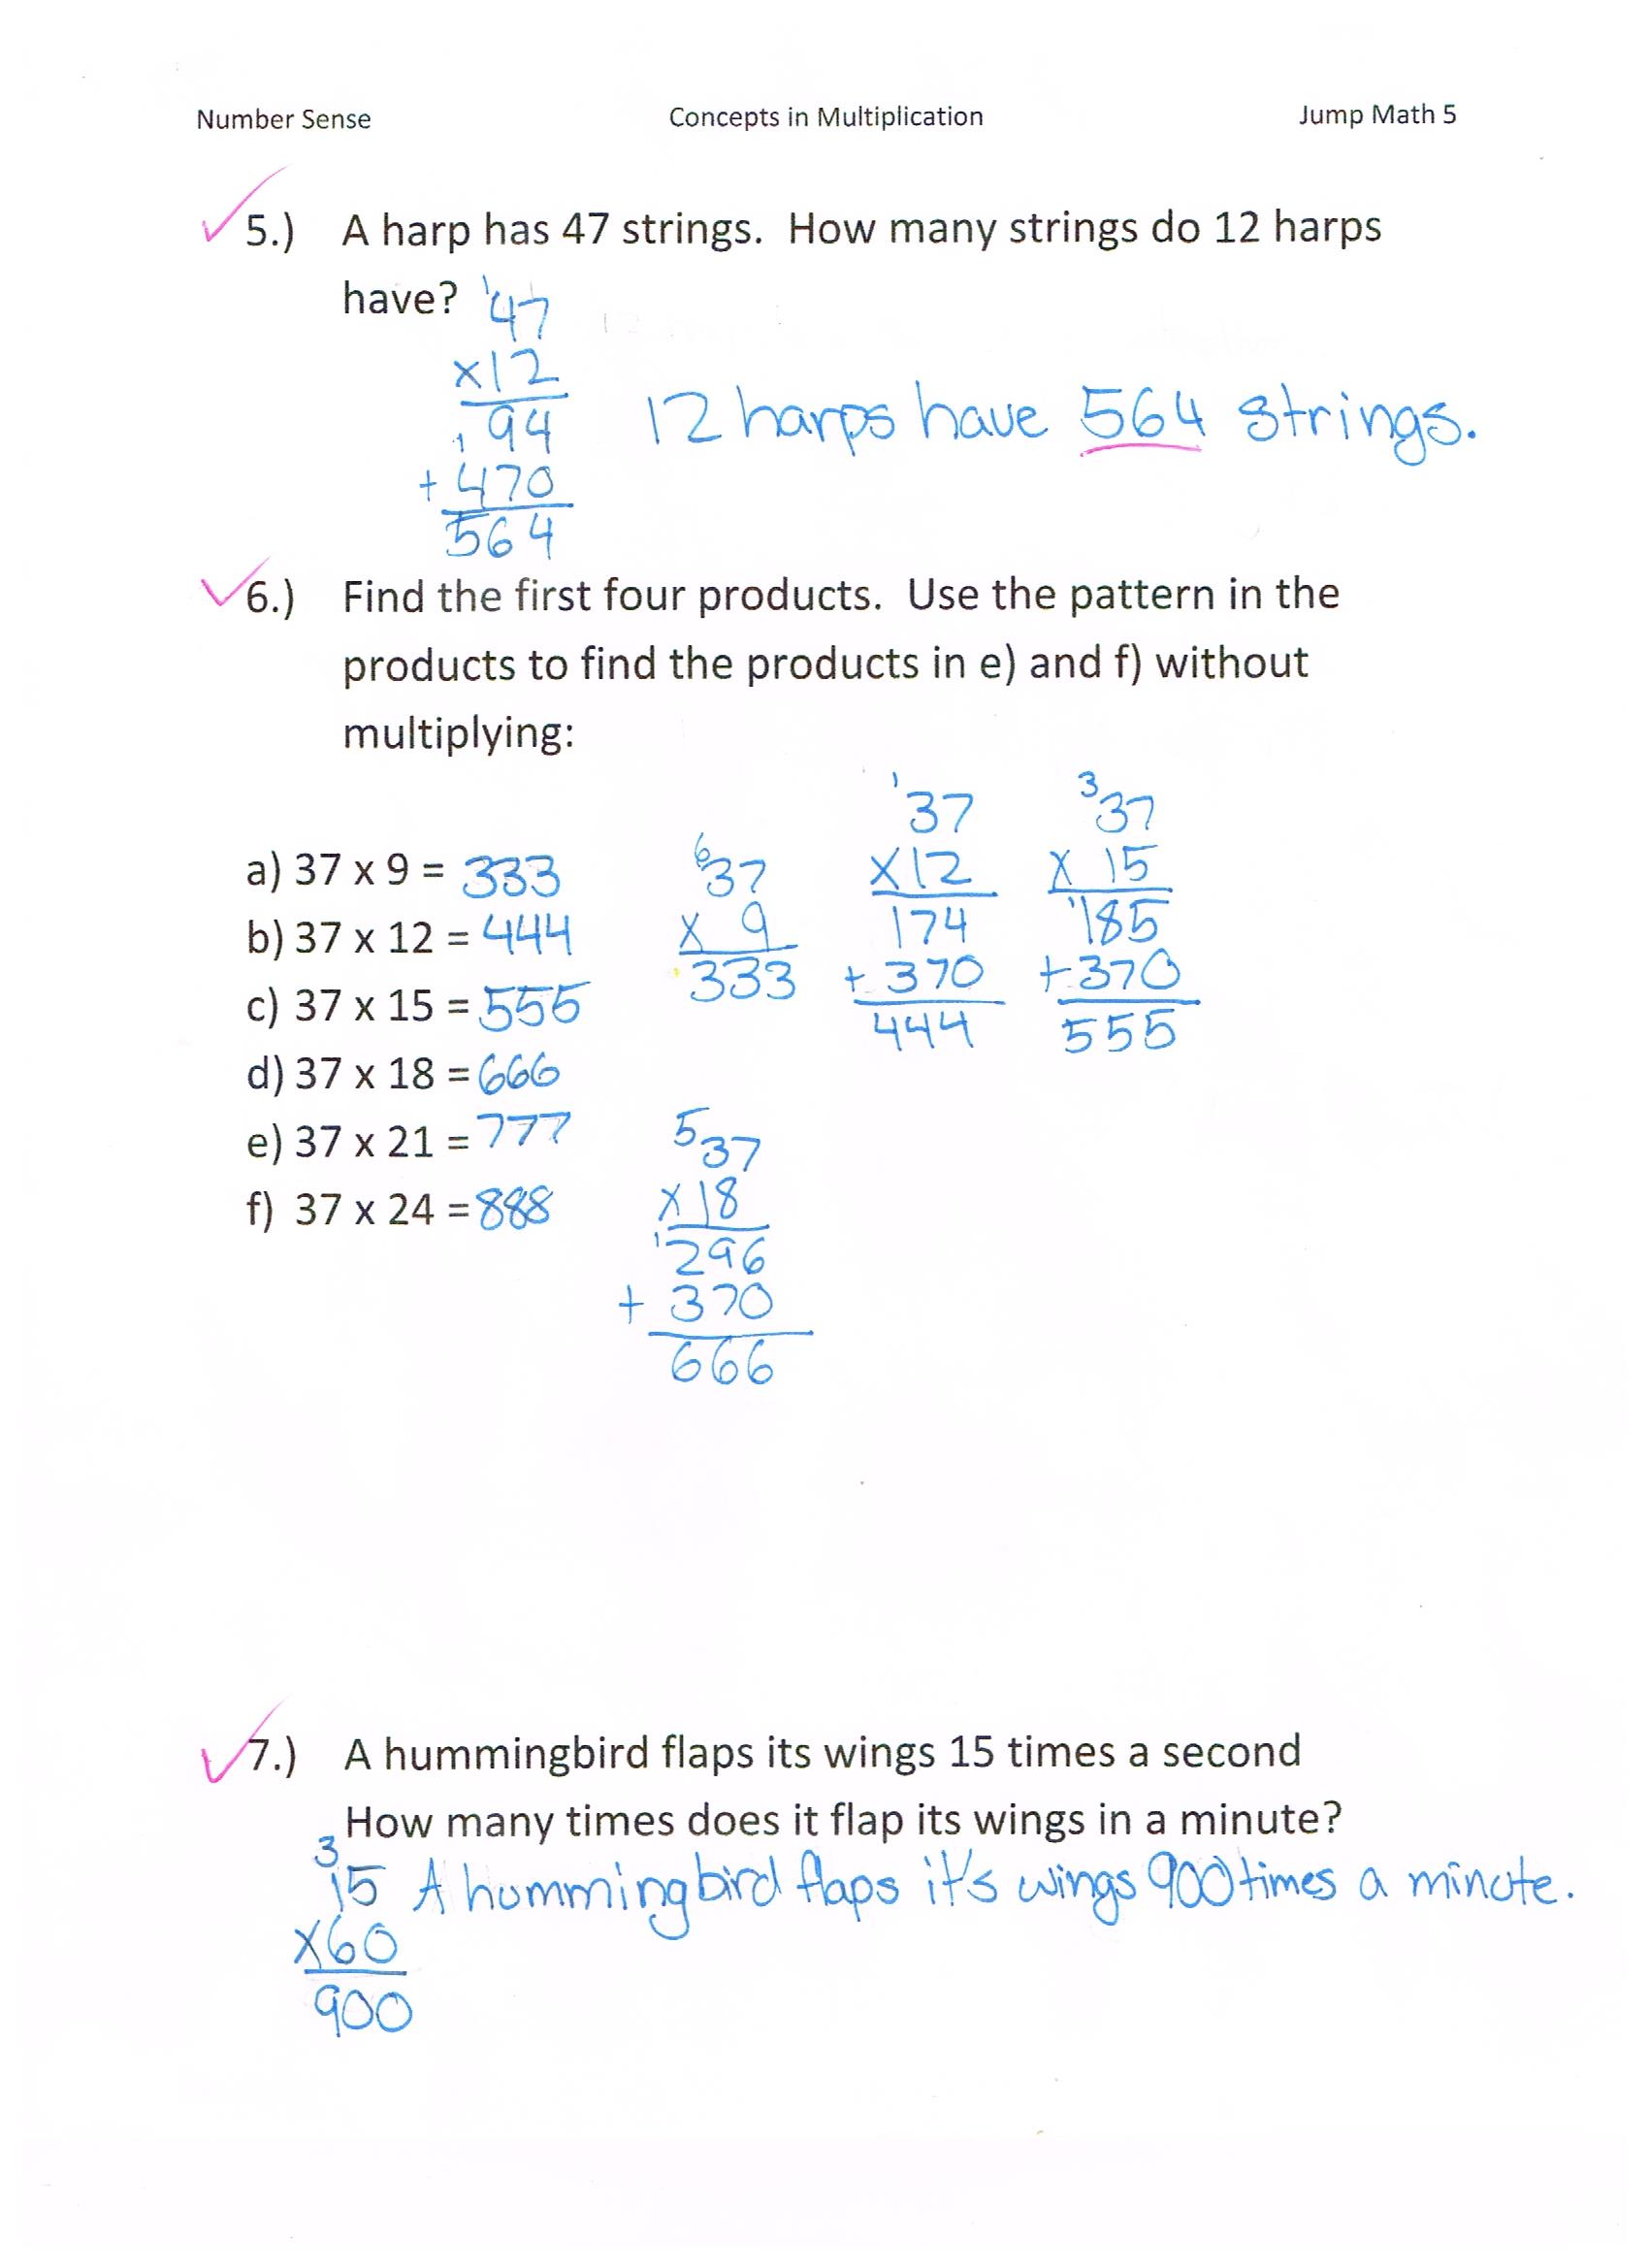 Jump Math 5 1 Number Sense Multiplication Page 77